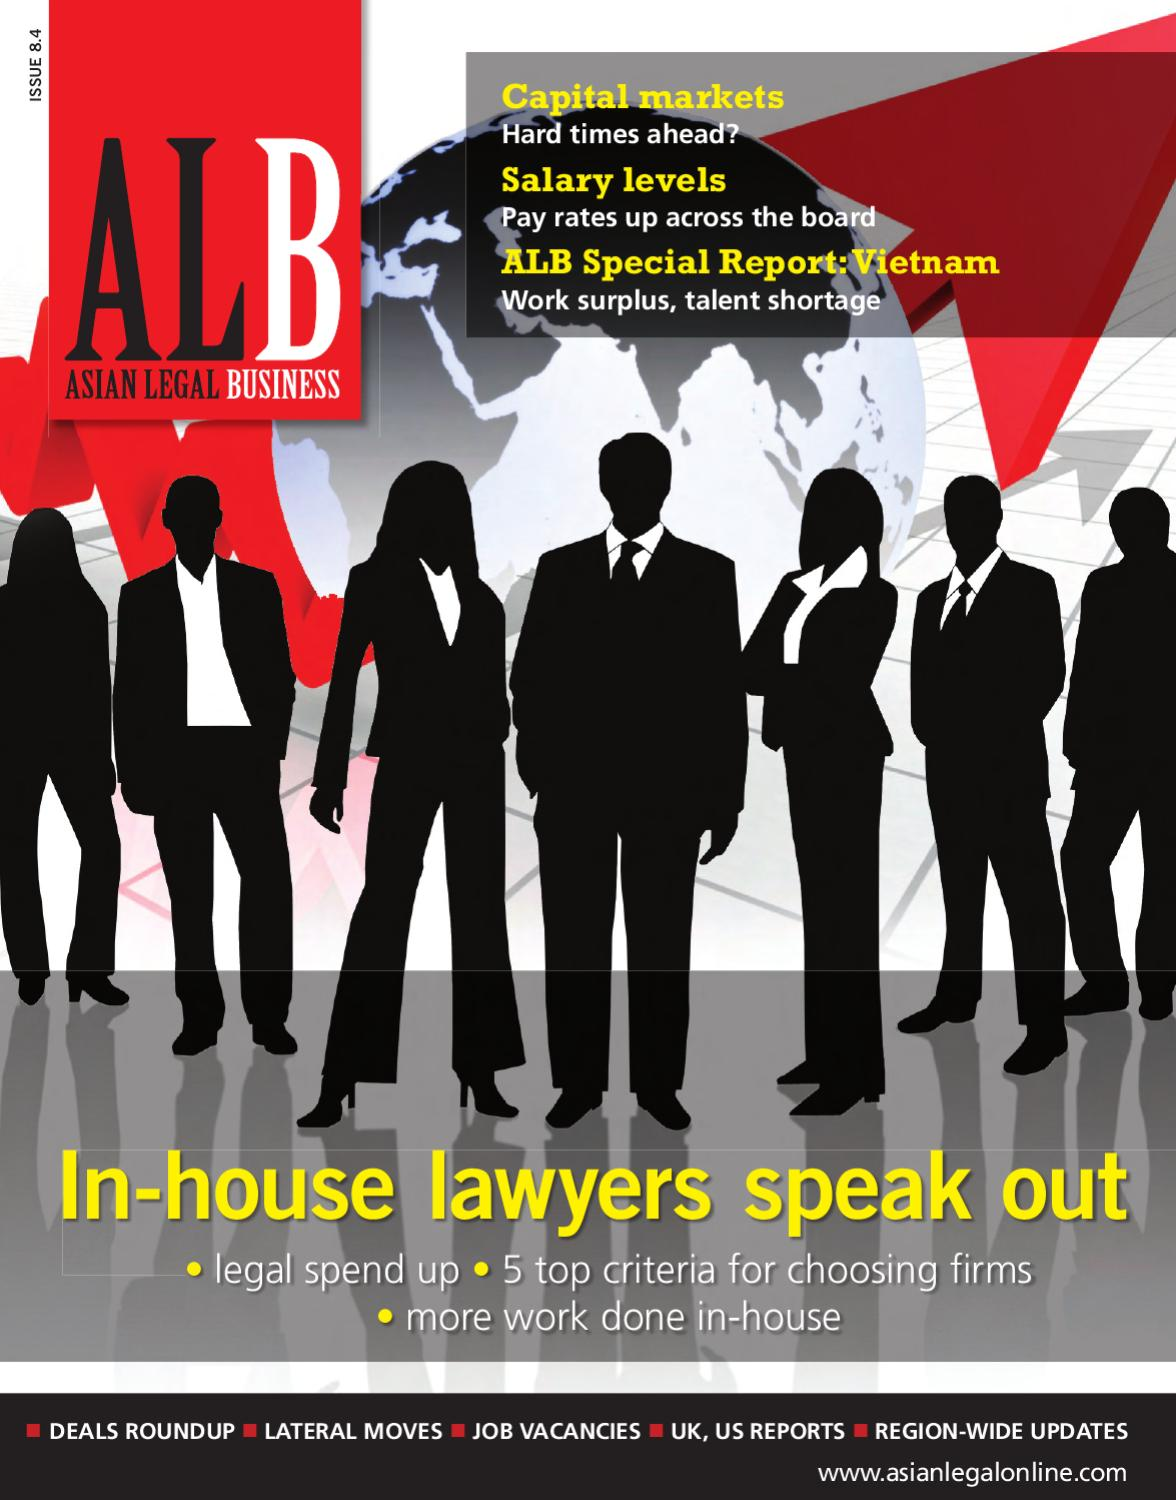 Asian Legal Business Apr 2008 by Key Media - issuu